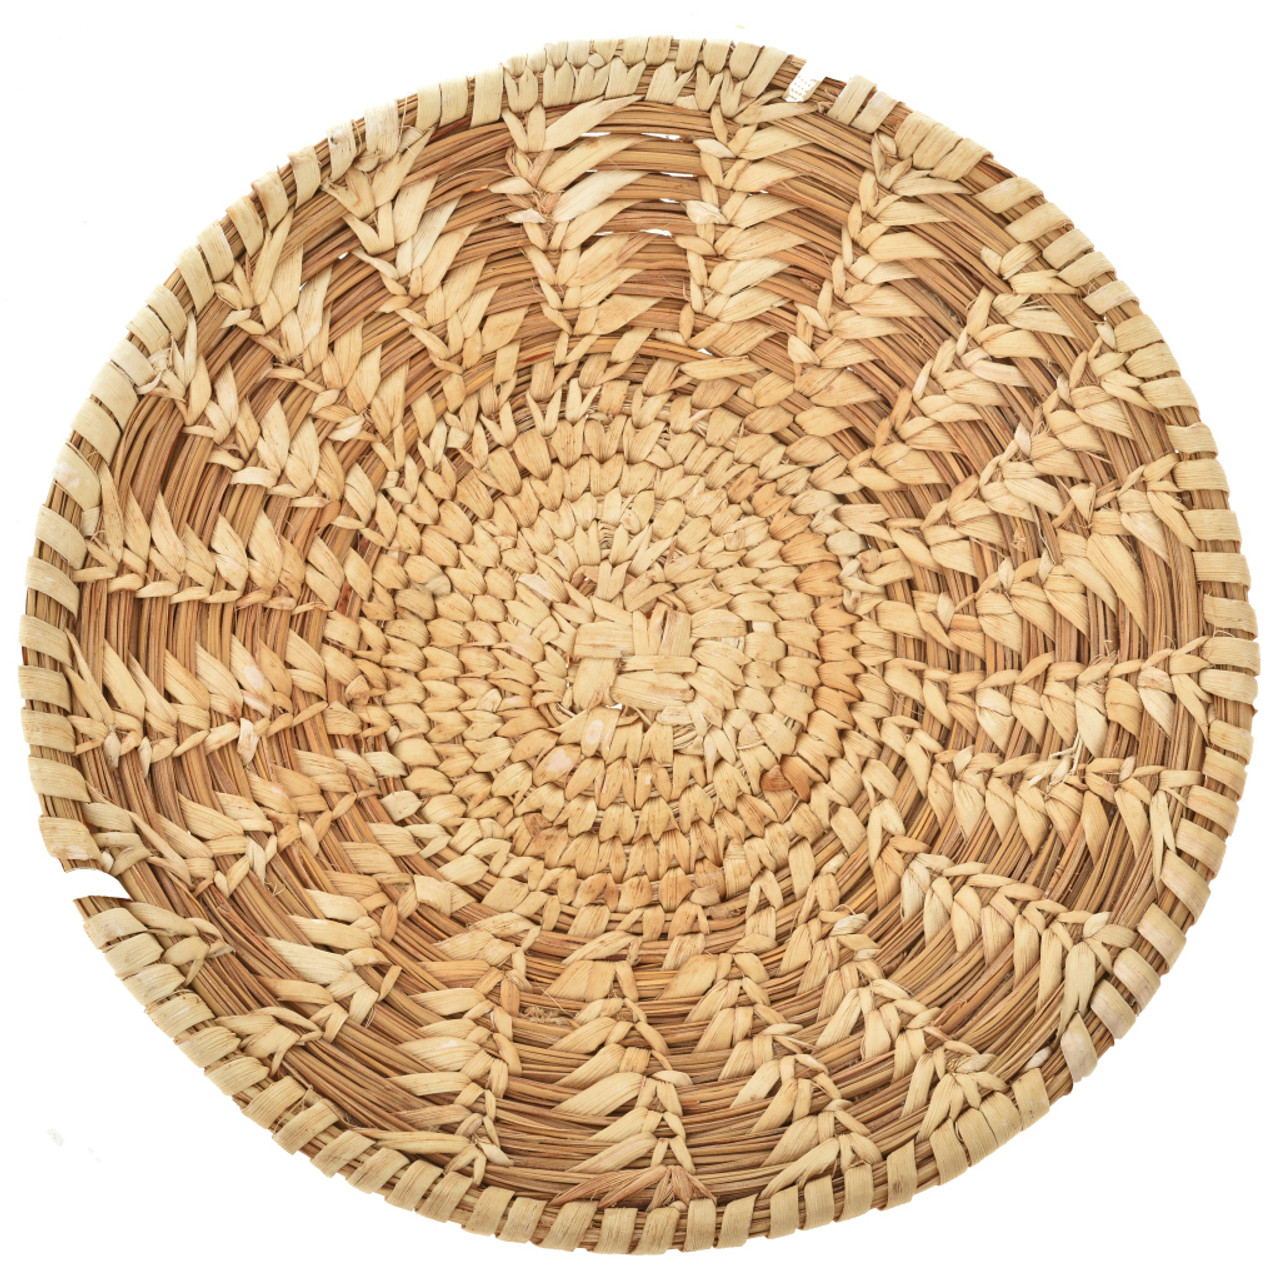 Papago Bowl - Native American Basket